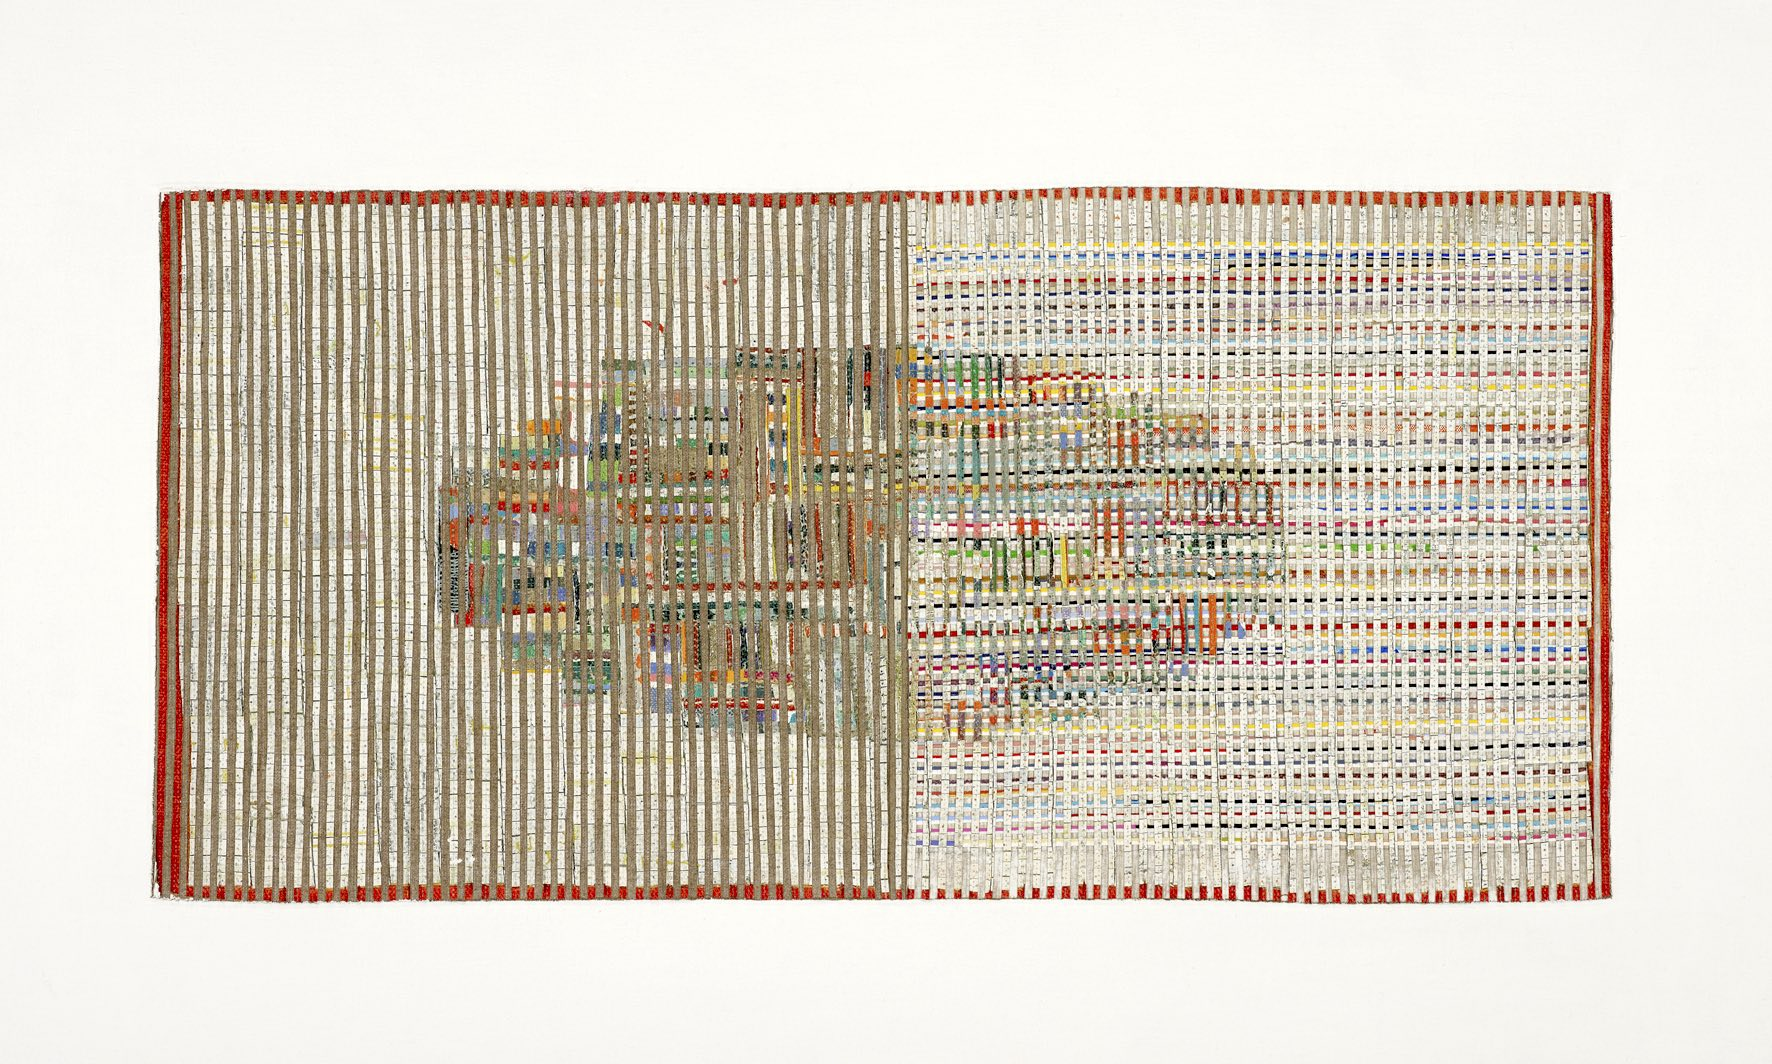 Eveline Kotai - Field for a New Ball 1, 2012, mixed media stitched collage, 60x90cm